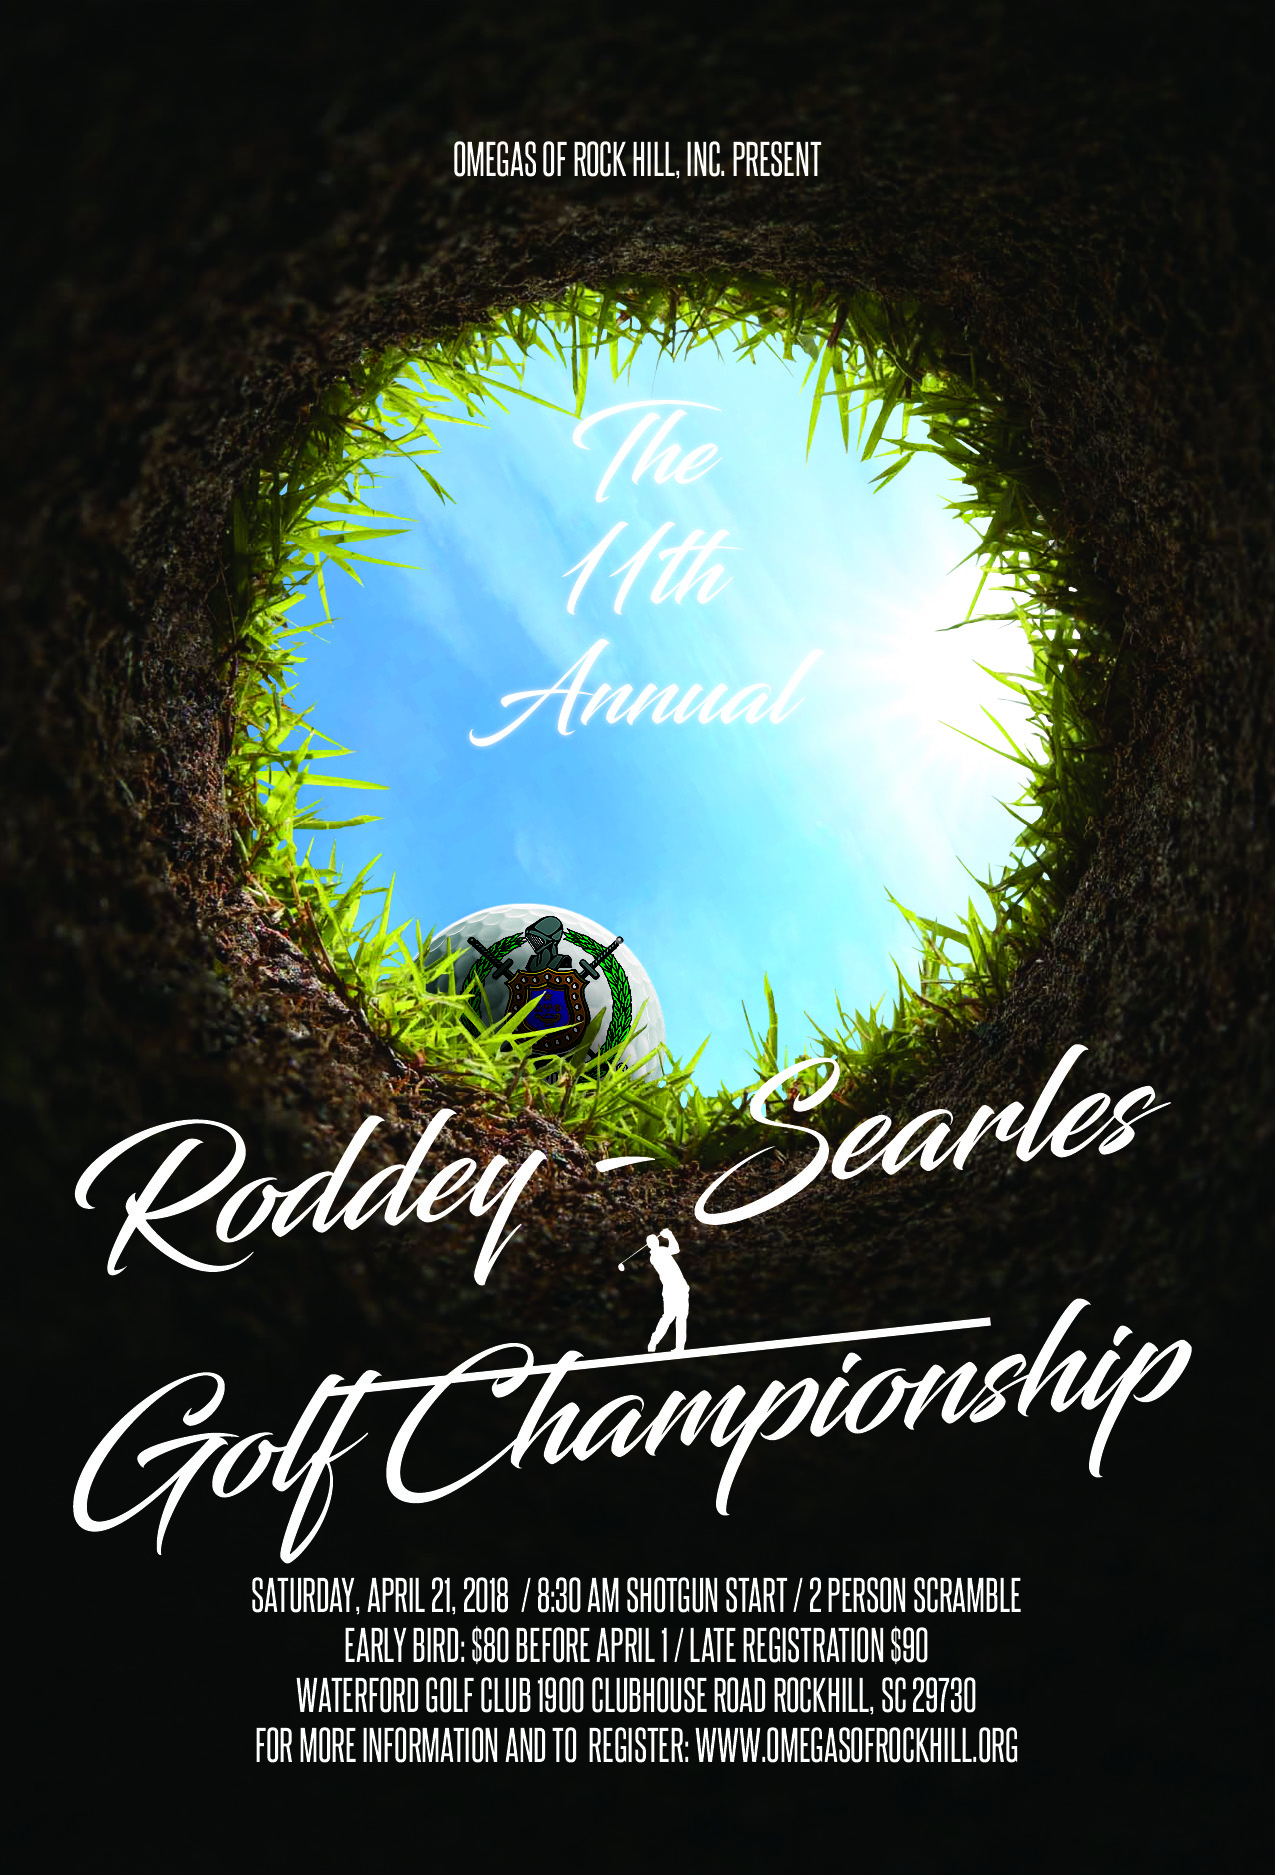 Roddey - Searles Golf Championship